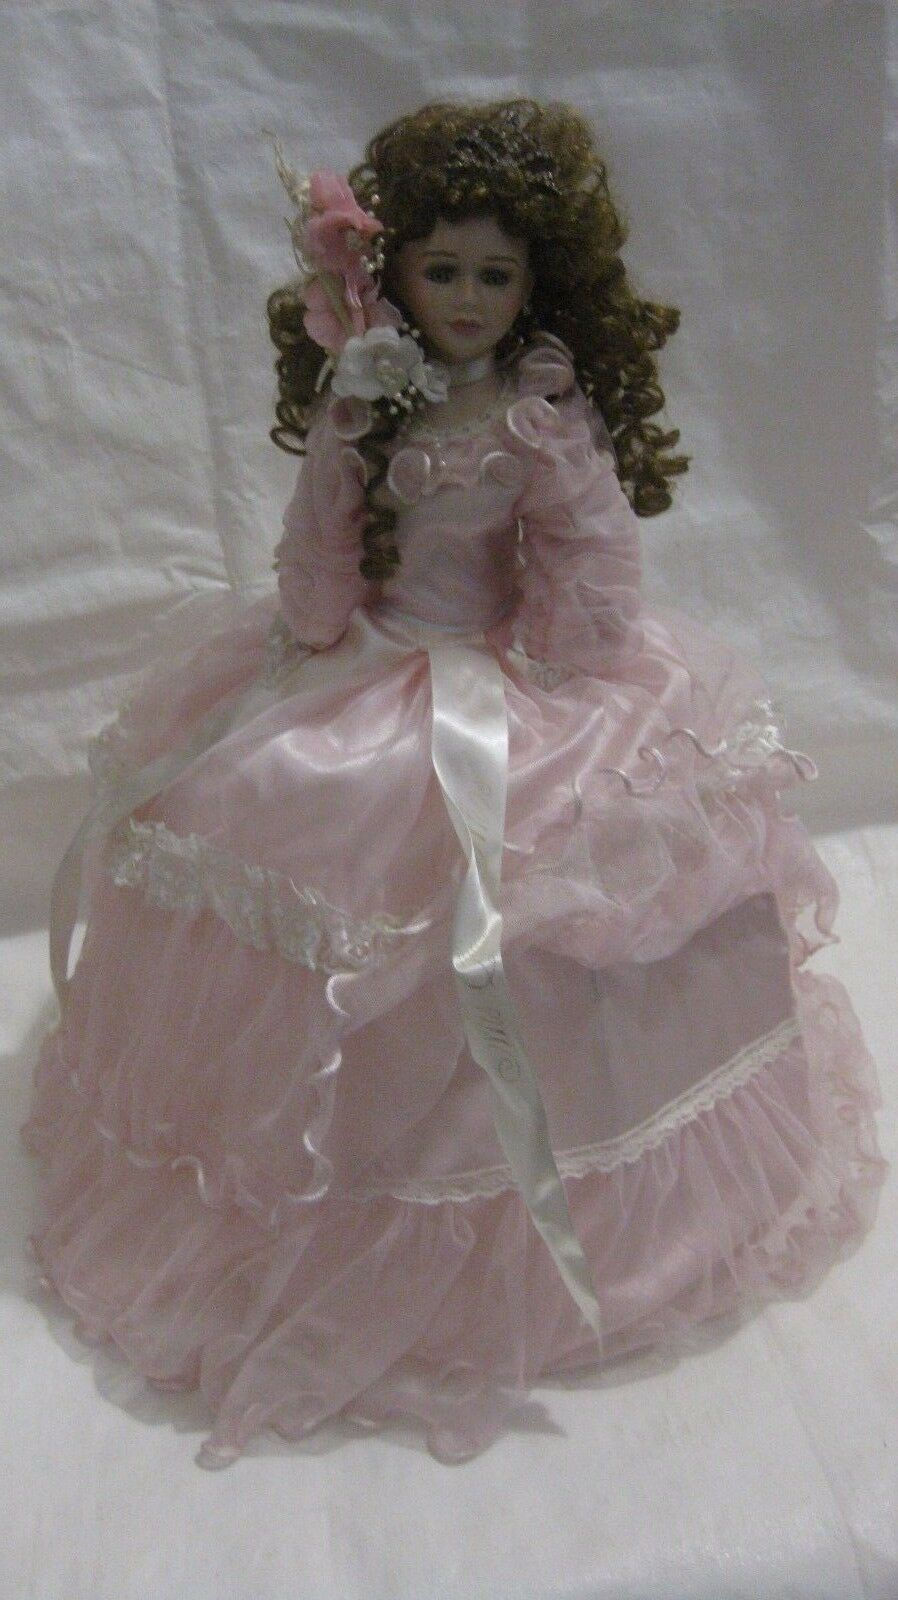 Rare Collectible Porcelain Doll 24in. Cathay Collection In A Pink Umbrella Dress